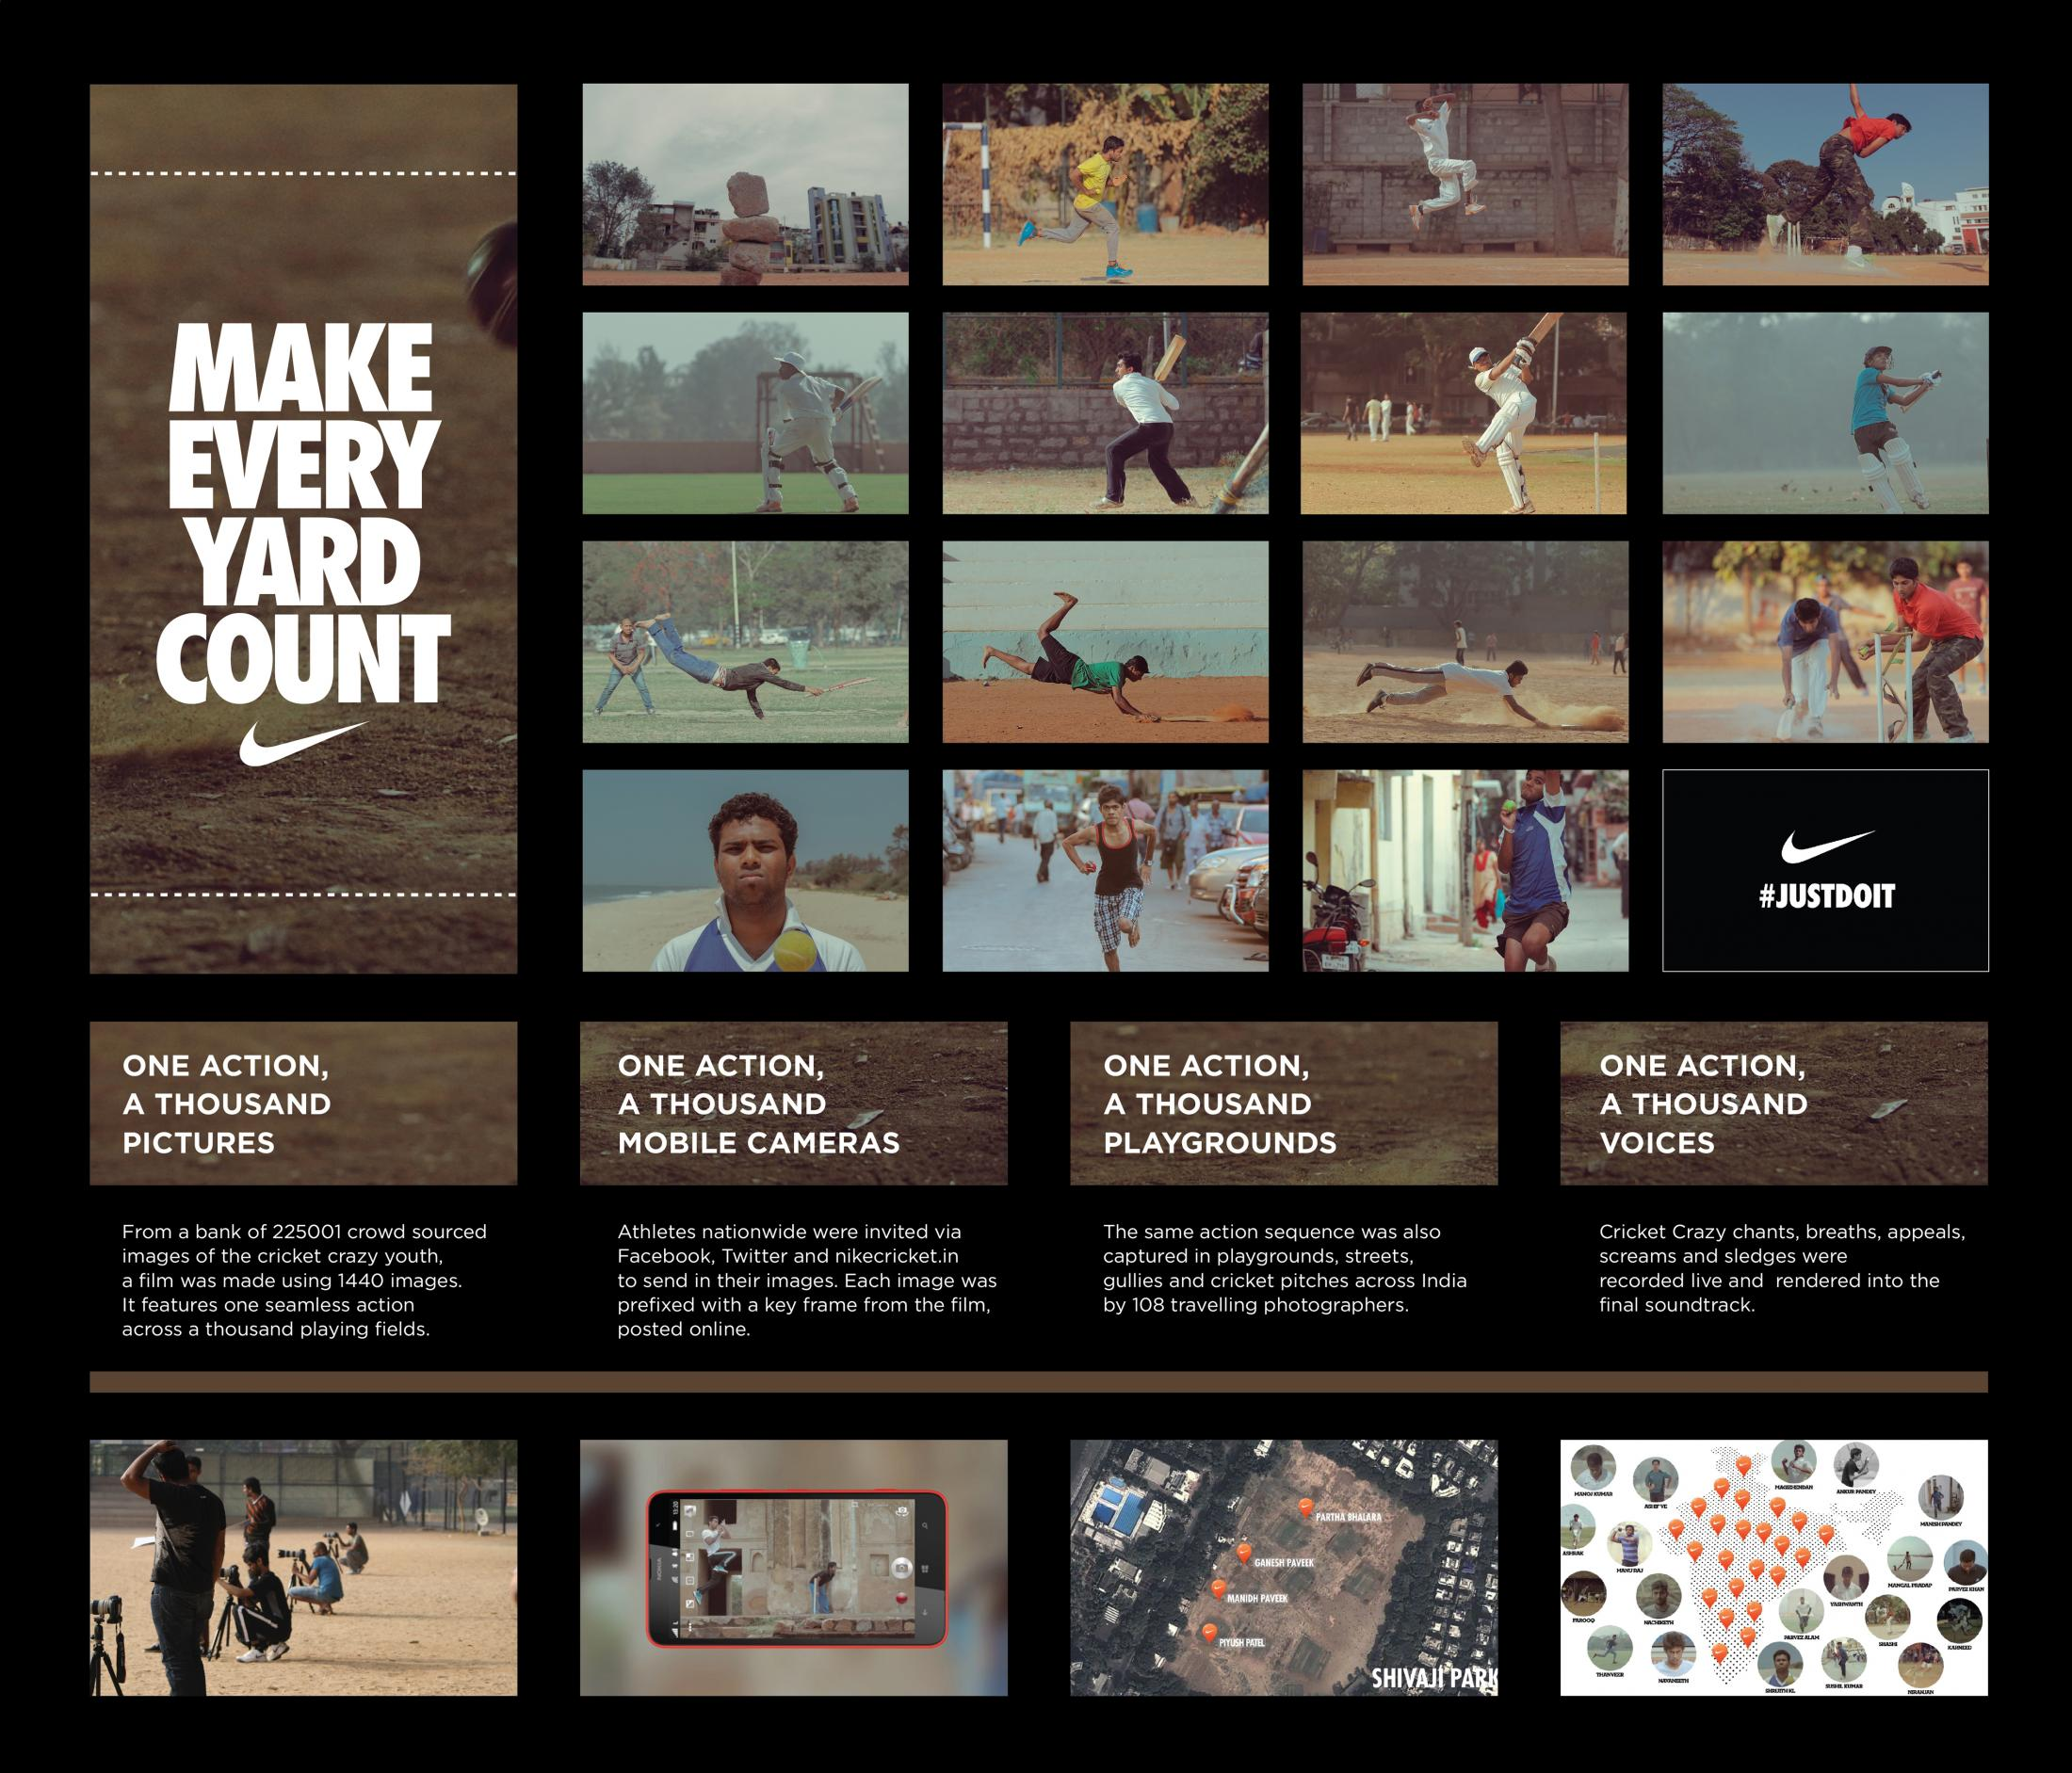 Thumbnail for MAKE EVERY YARD COUNT